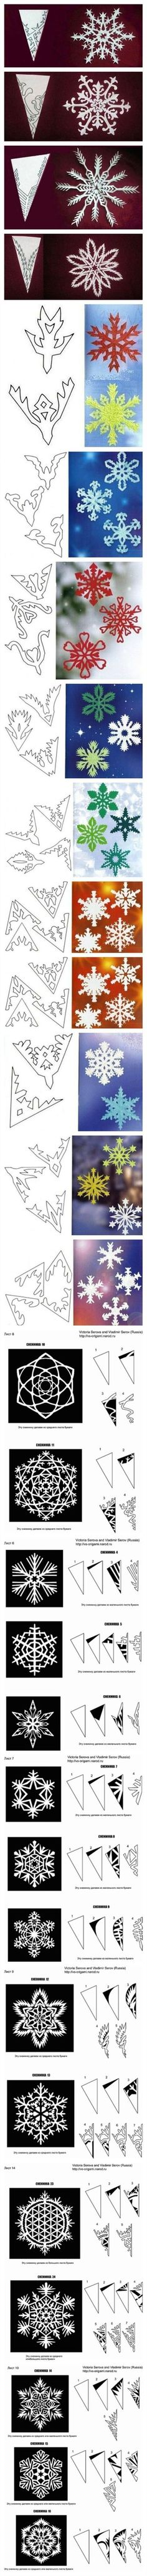 {} In the history of the whole big picture snowflake paper cut tutorial collection. This winter the windows will not be lonely. Good fun ah. (Puzzles easy, outside the station reproduced please specify) [A] group meatball